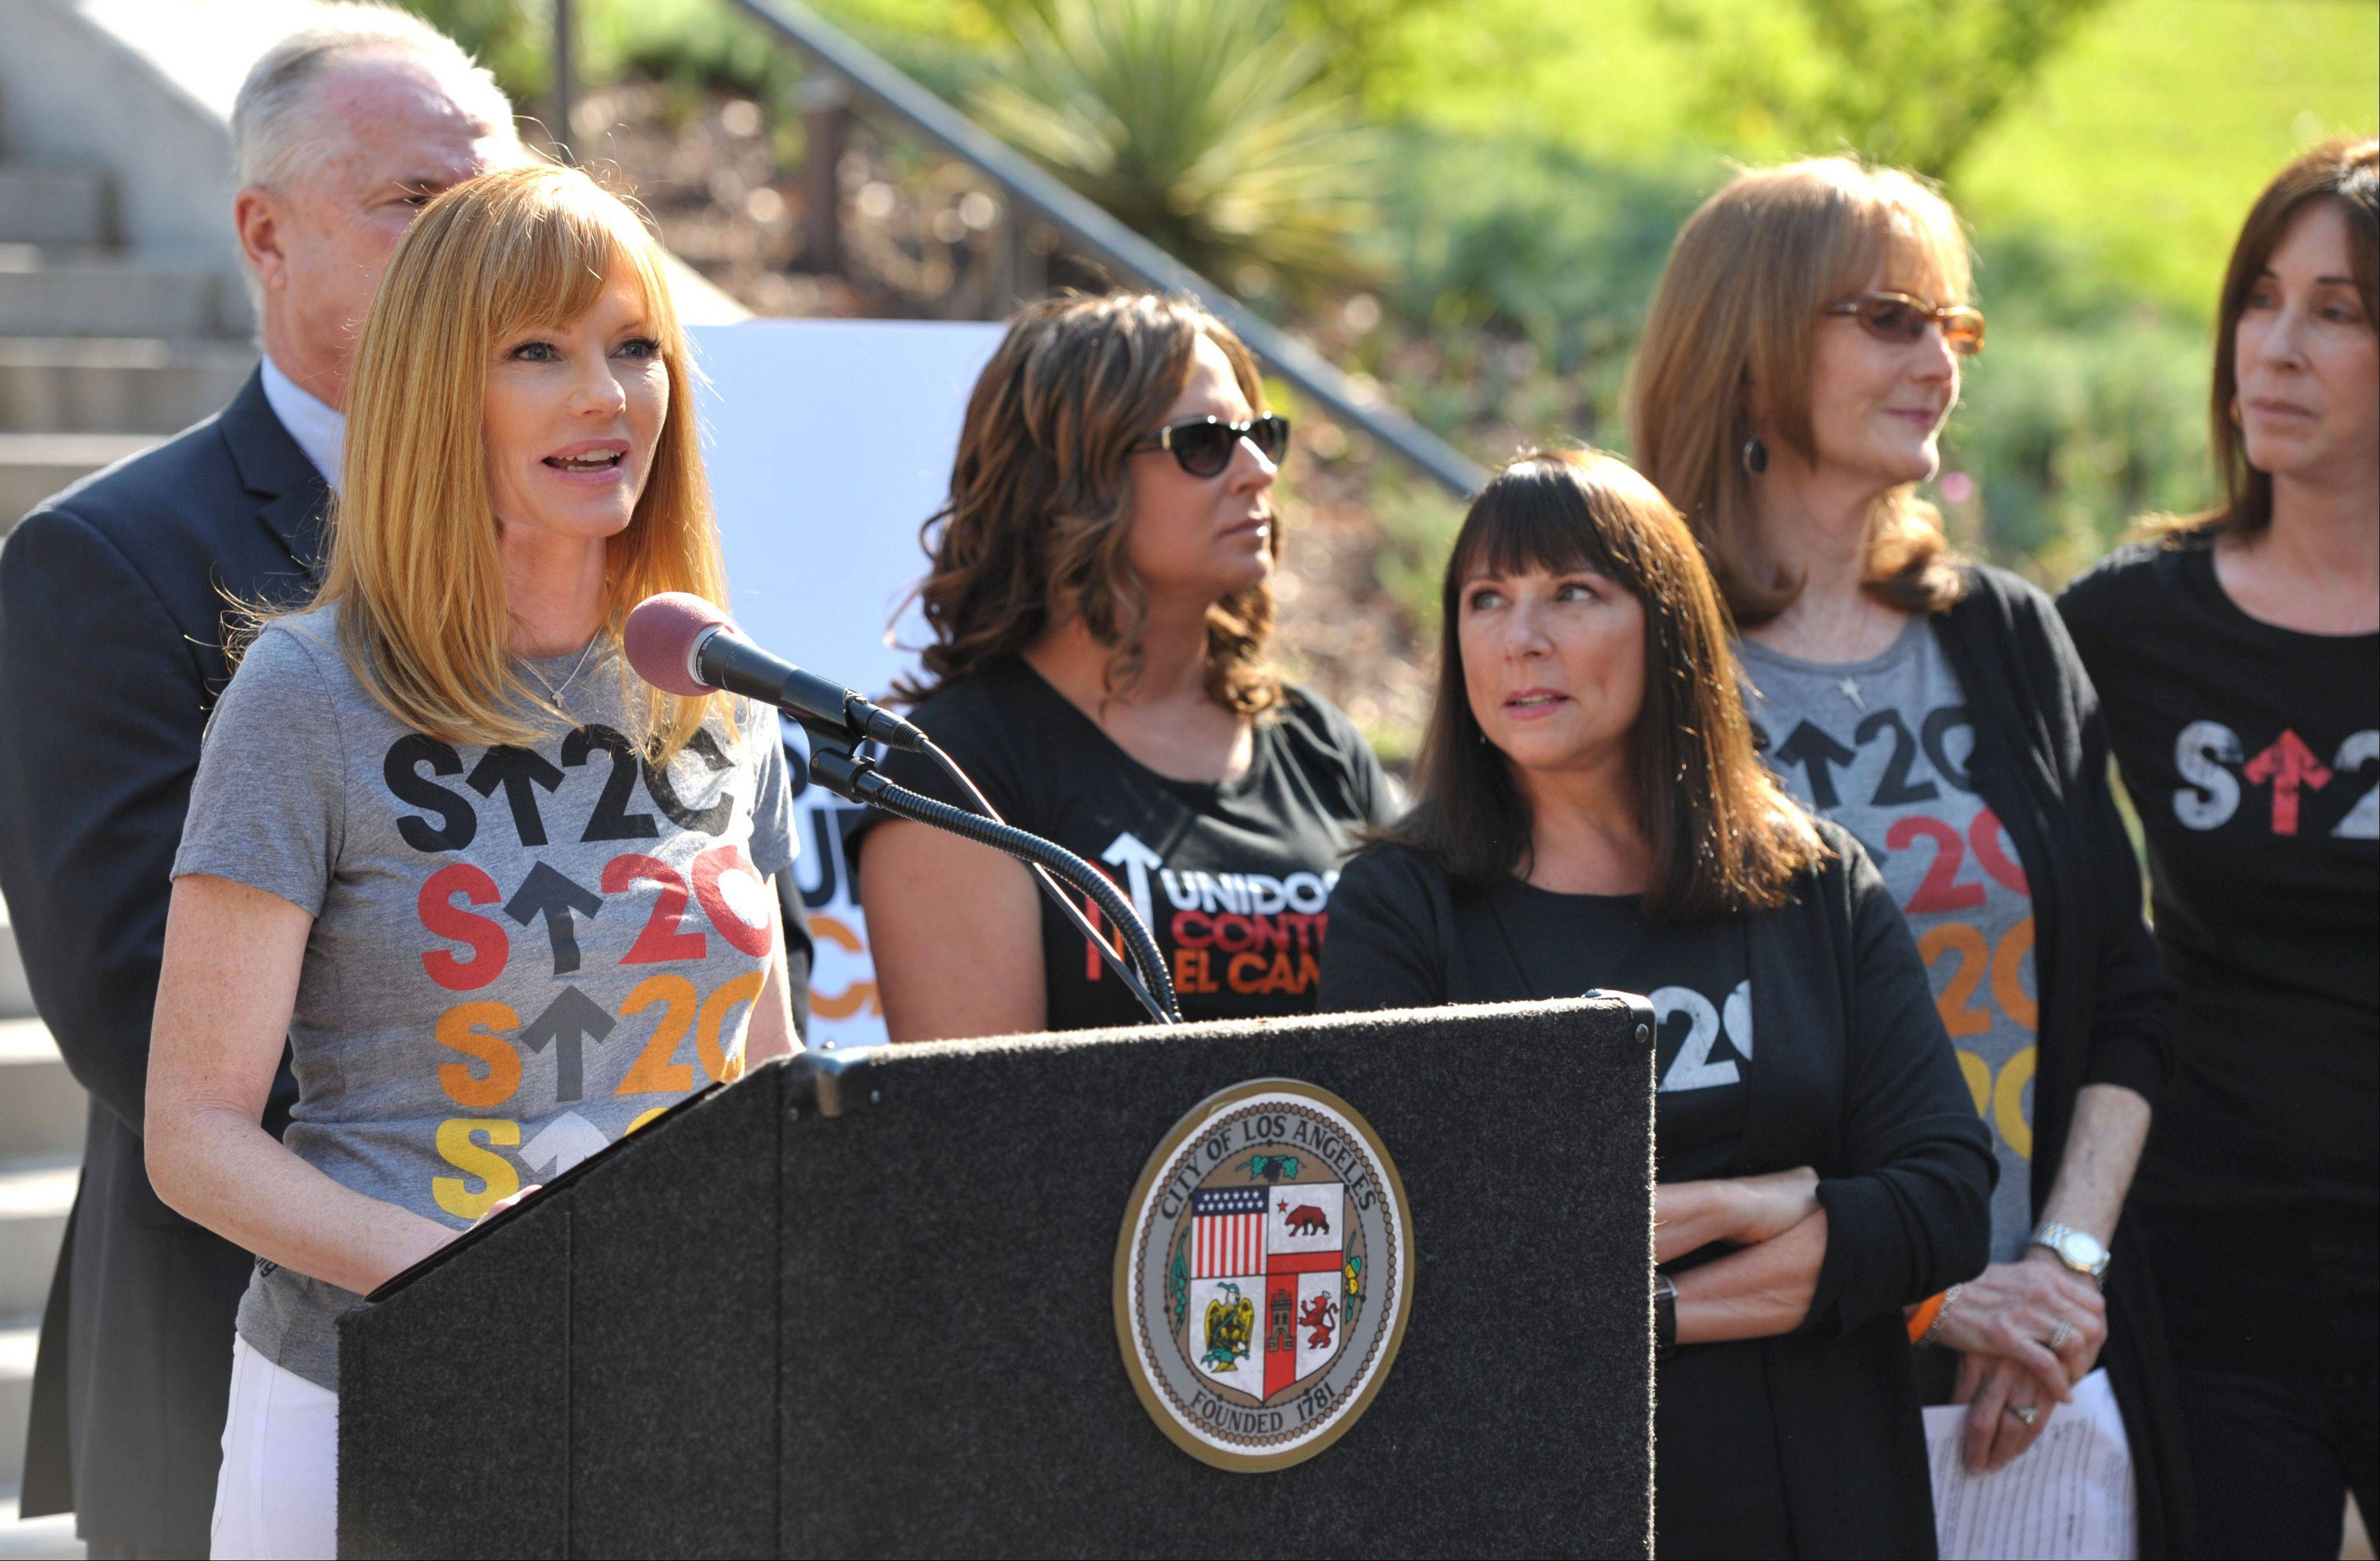 Actress Marg Helgenberger, left, appears at the Stand Up To Cancer Day announcement at Los Angeles City Hall on Tuesday.